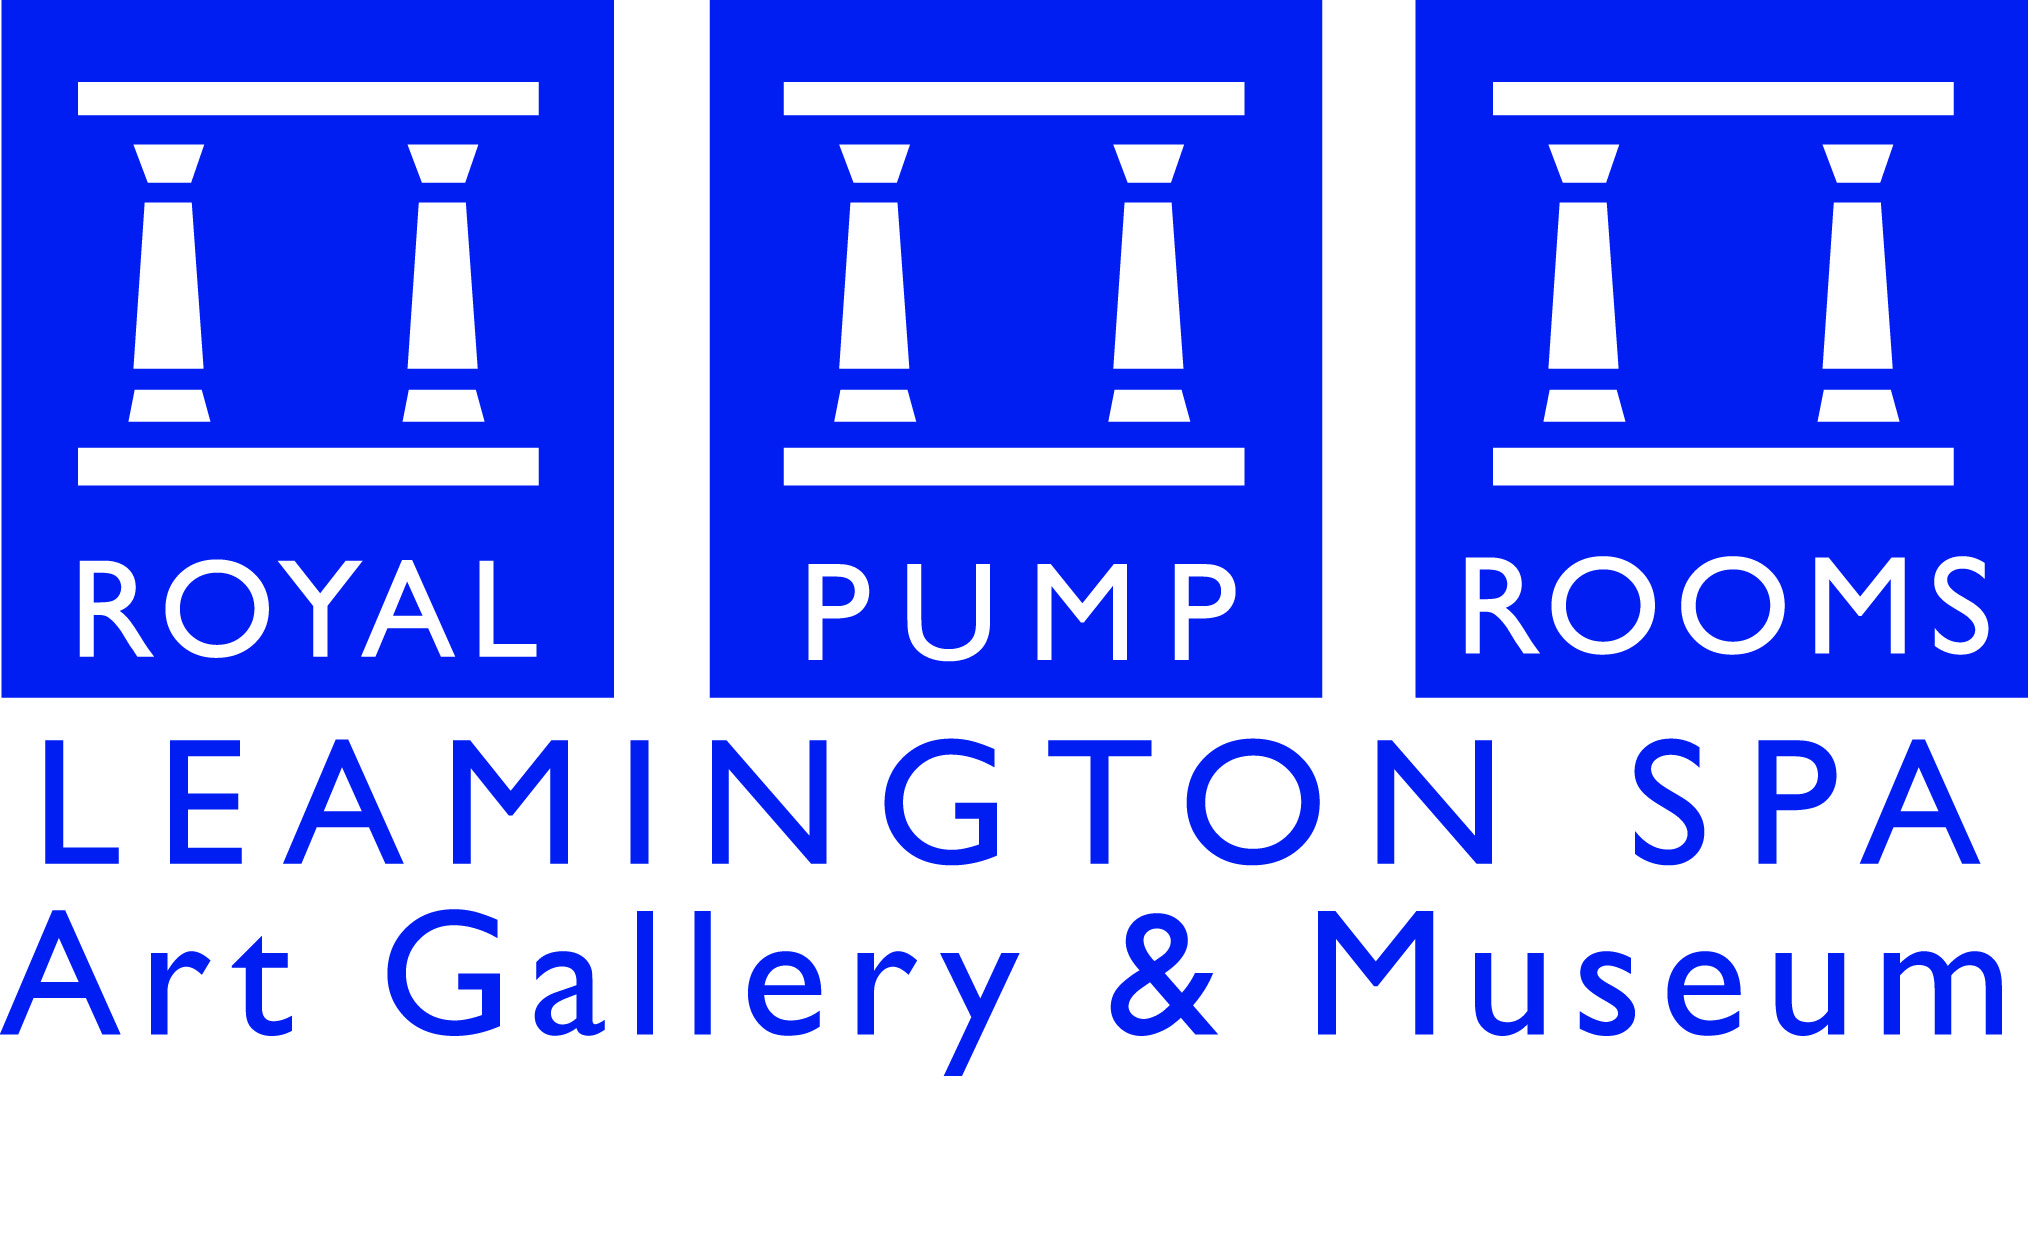 Leamington Spa Art Gallery and Museum